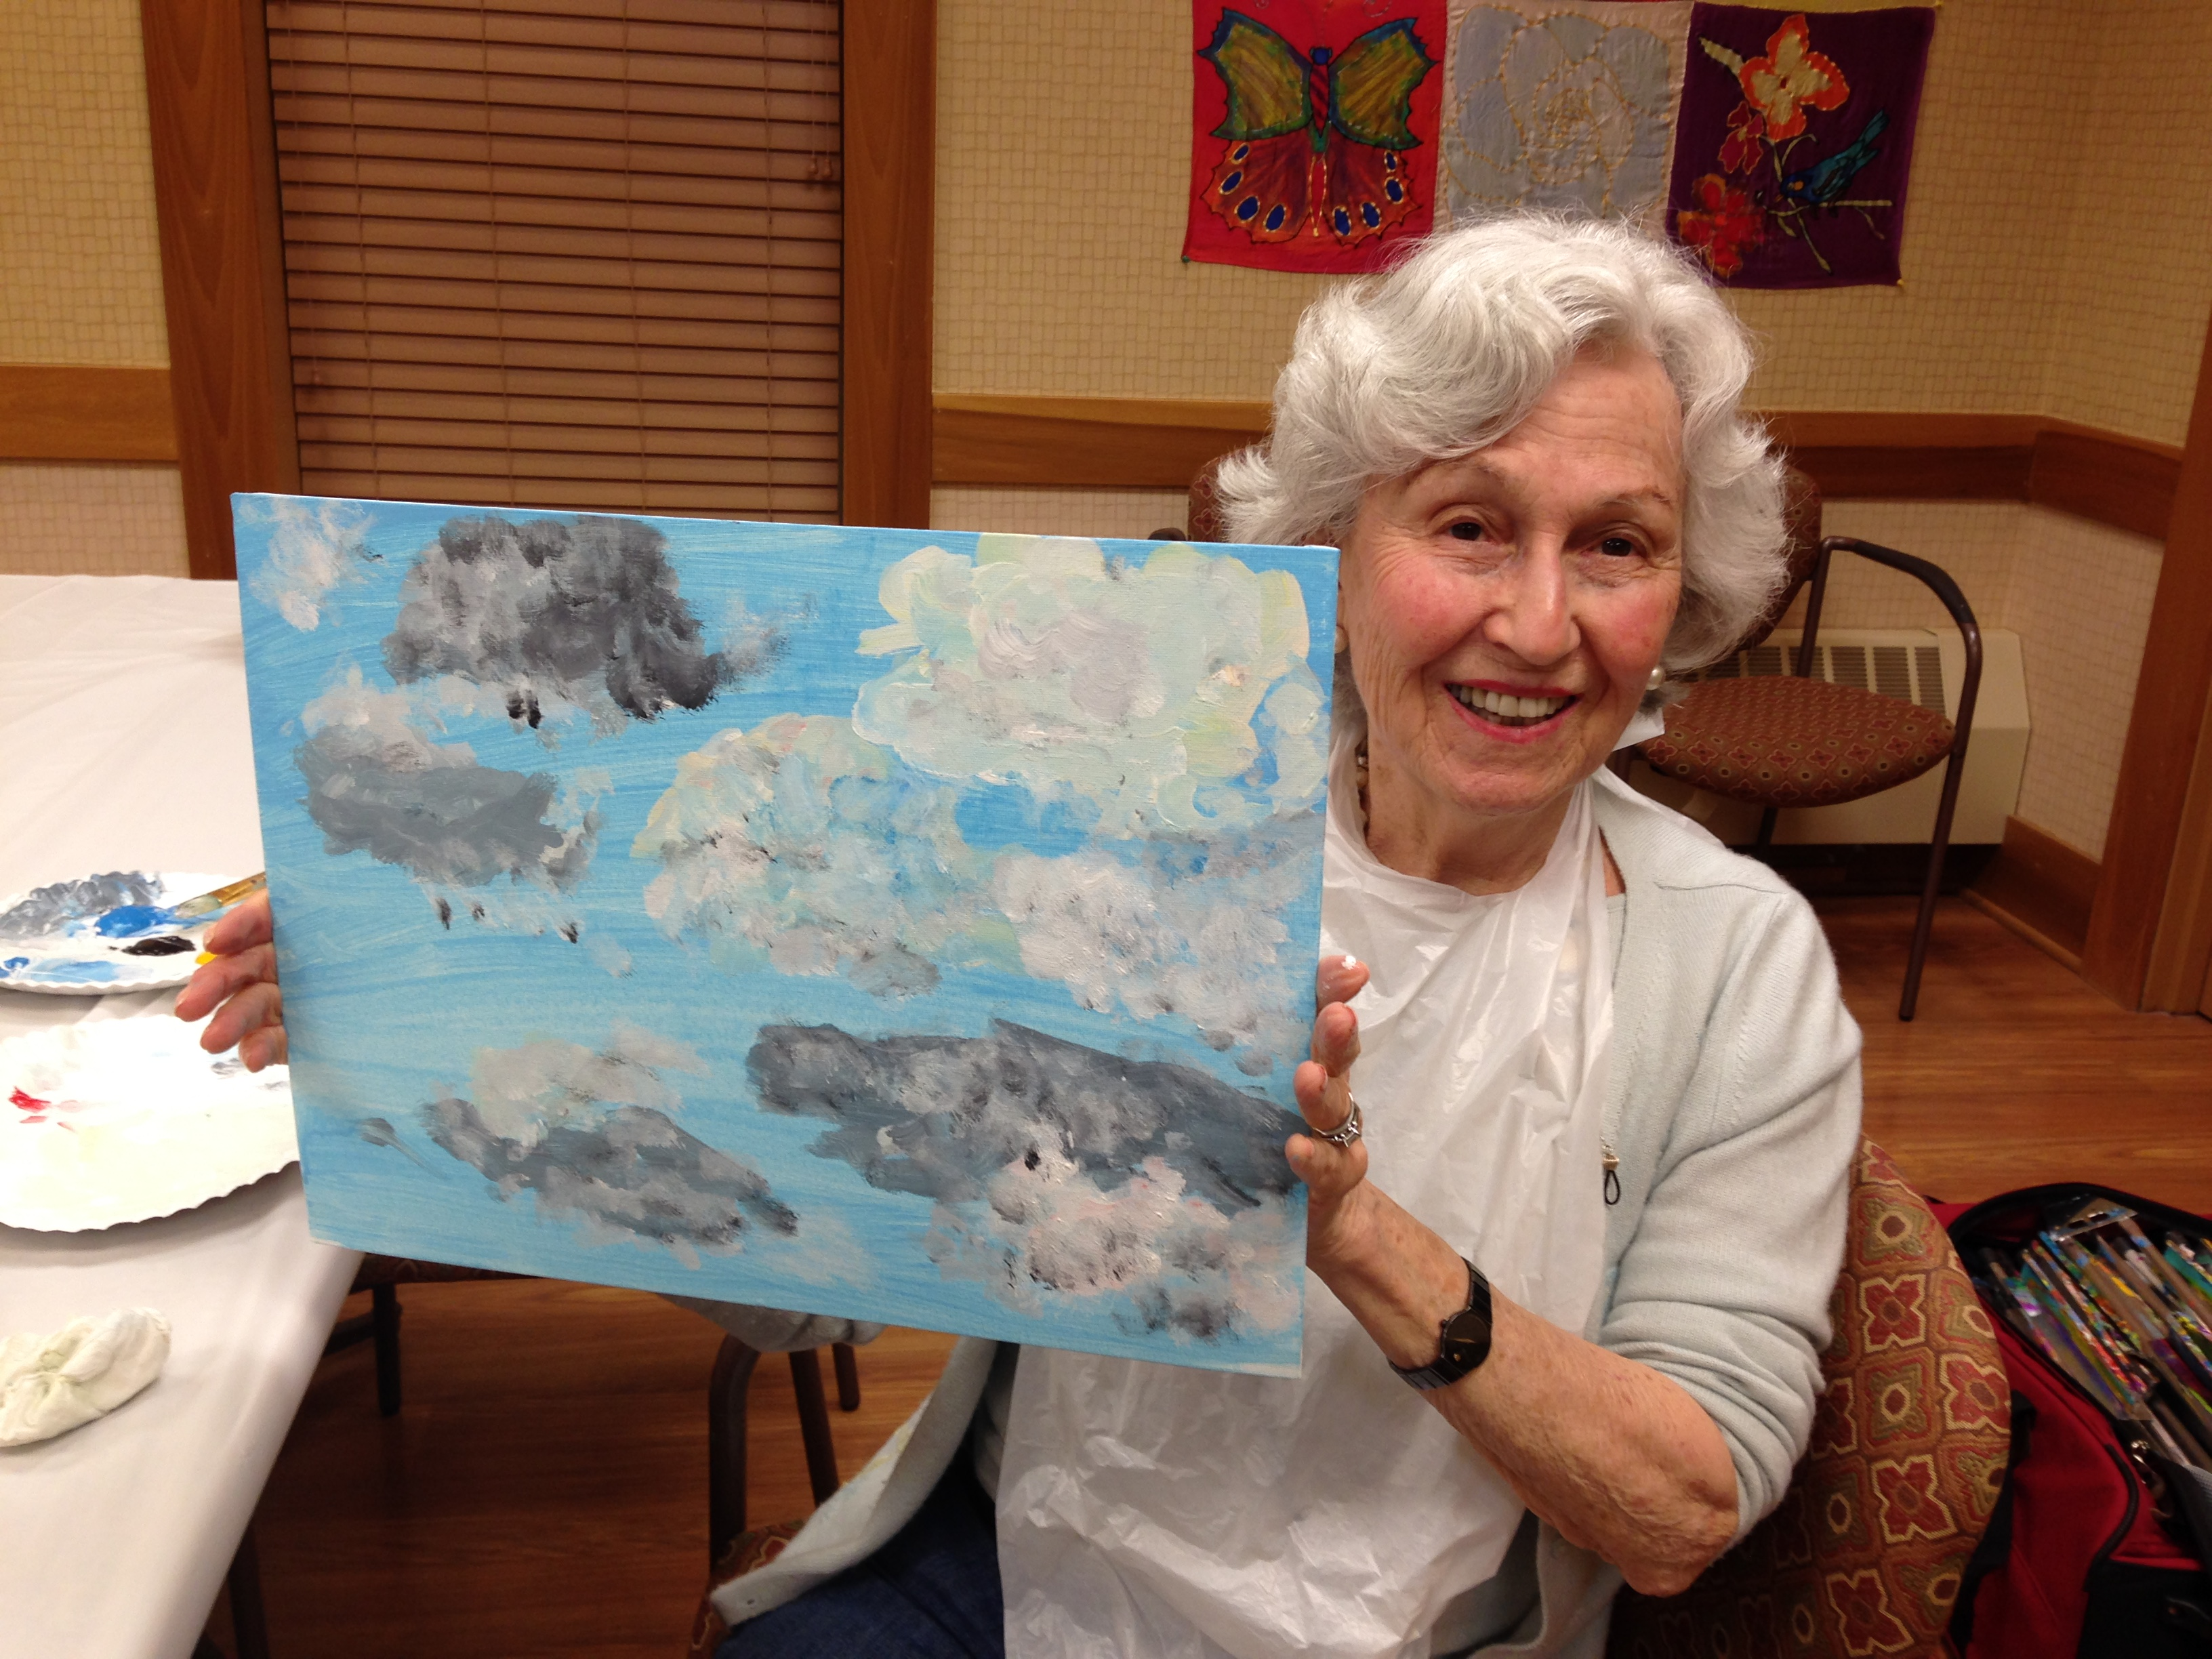 Wiggins Place painting event 3/16/16